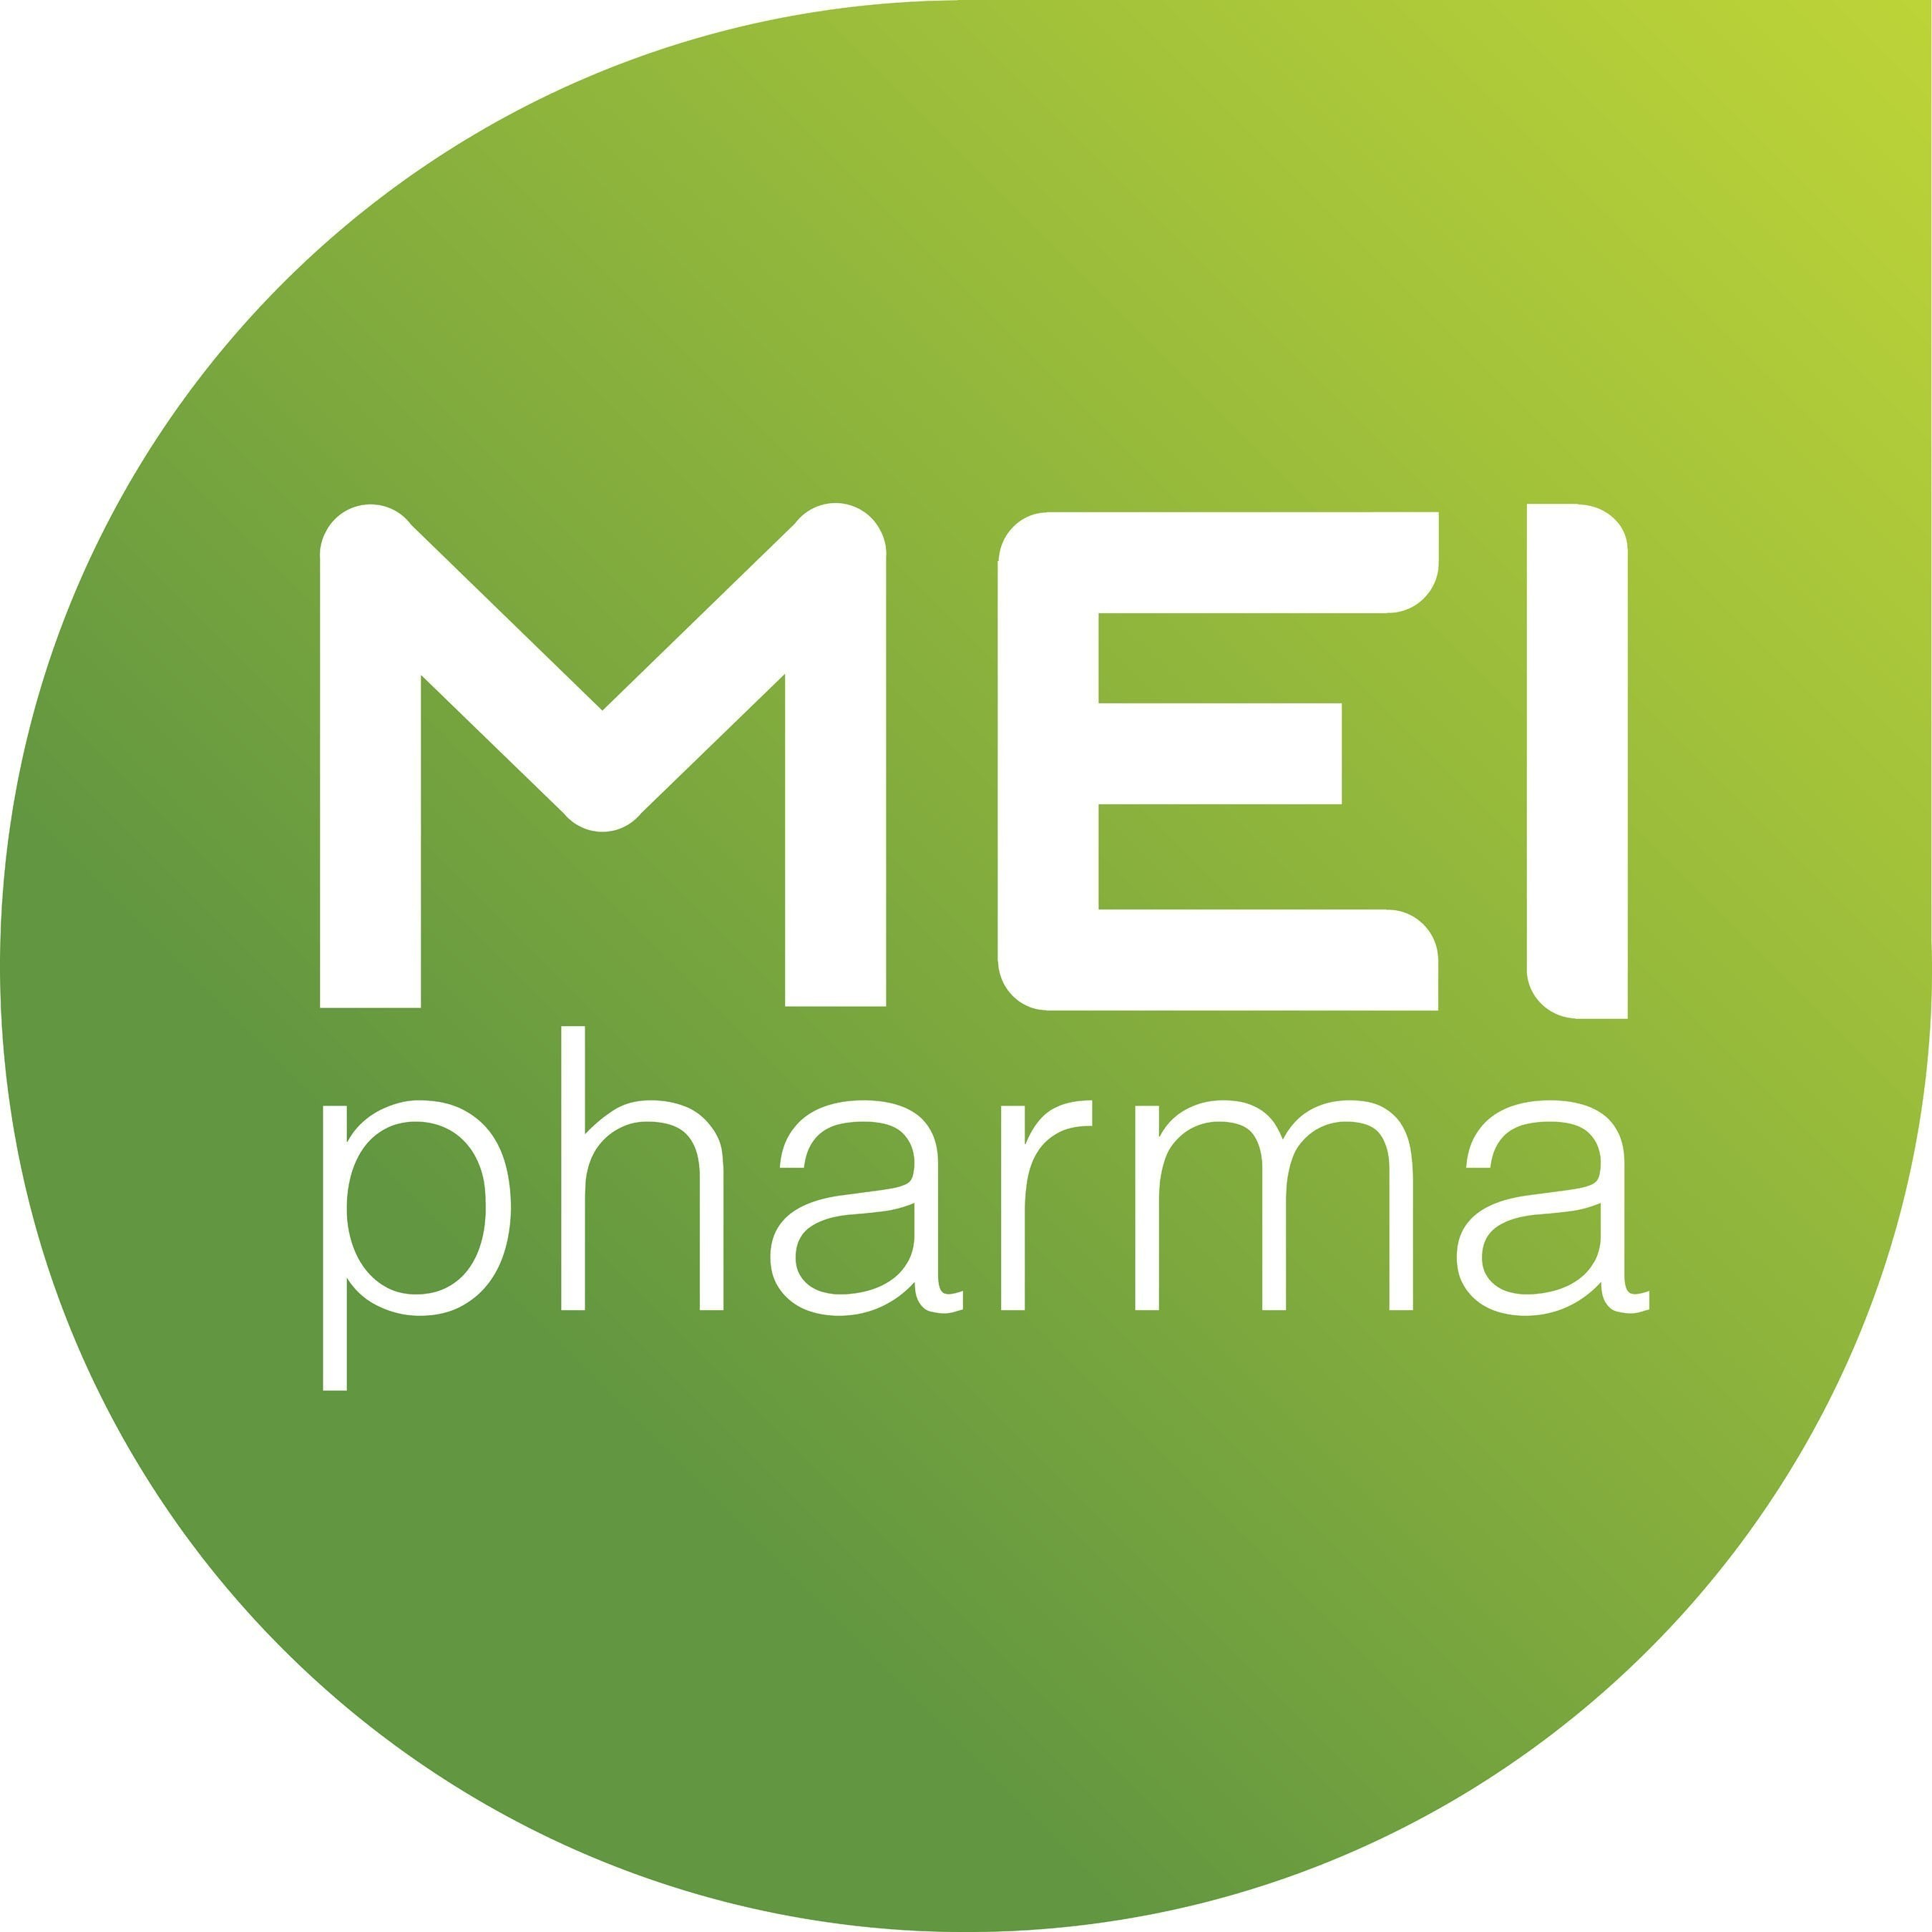 MEI Pharma Appoints Dr. Christine White as Chairman of the Board